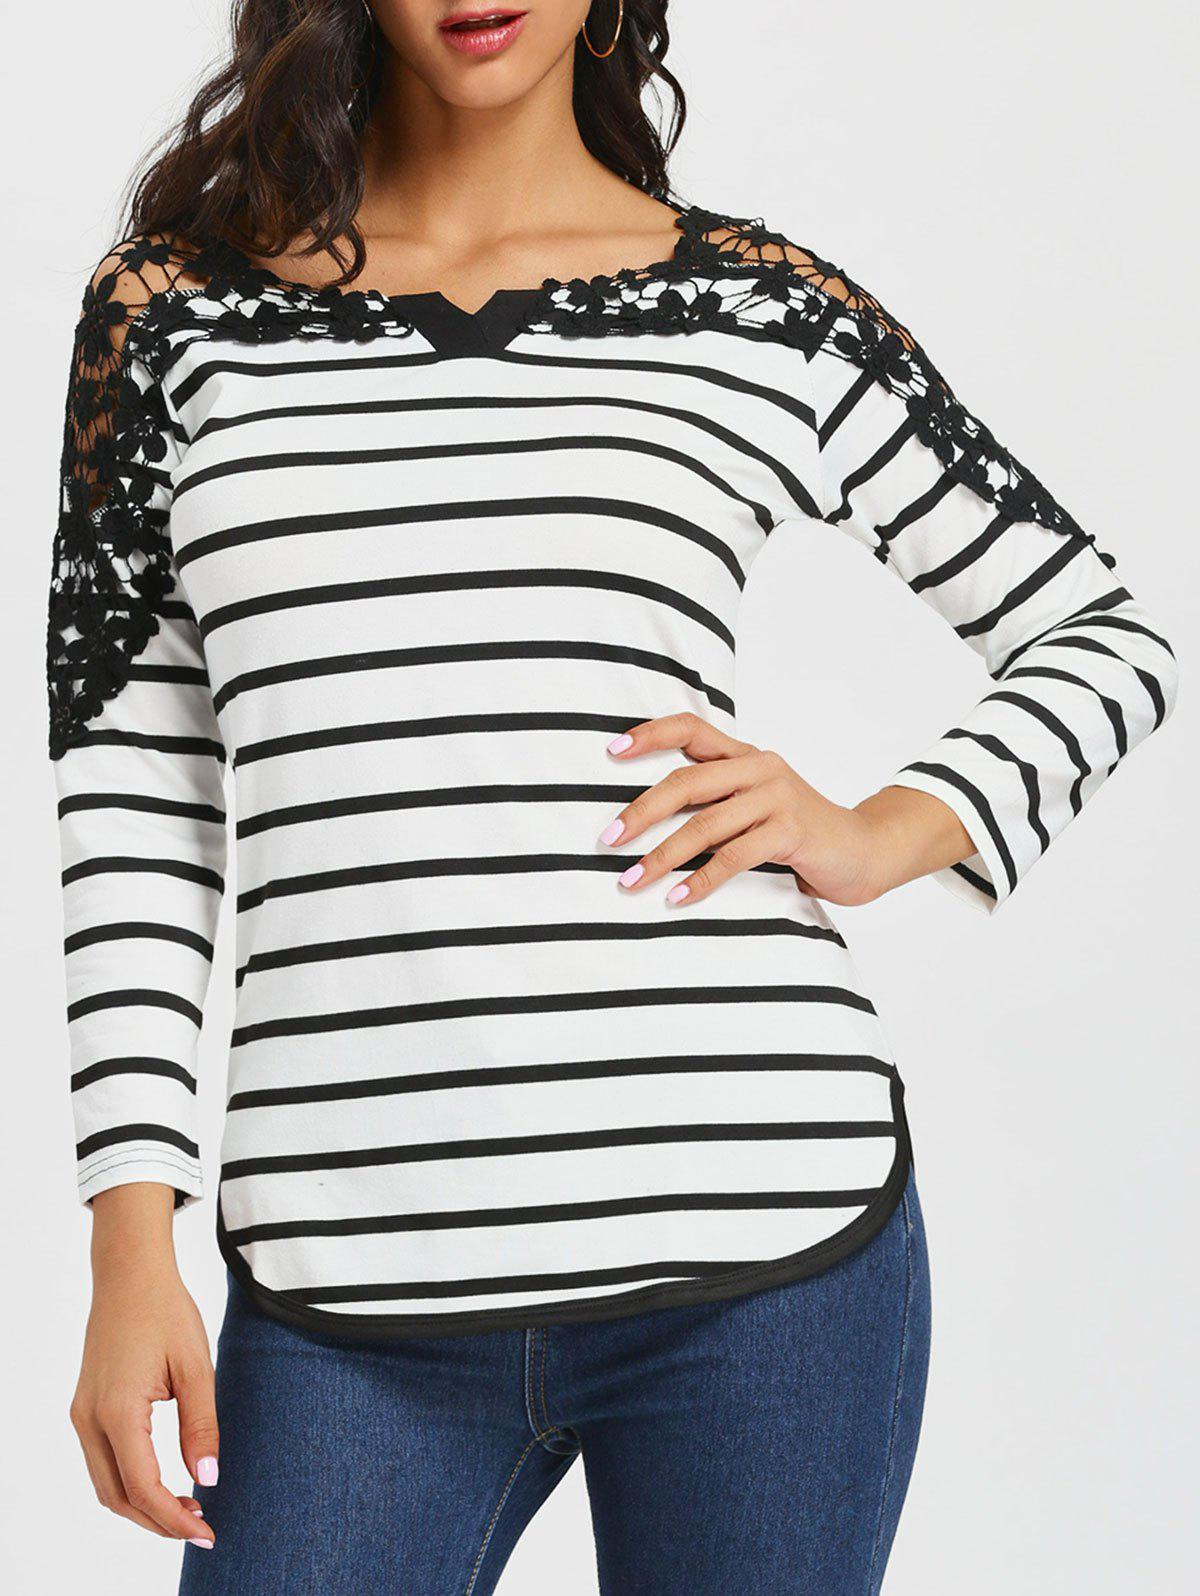 Long Sleeve Lace Panel Striped T-shirt lace up long sleeve striped t shirt